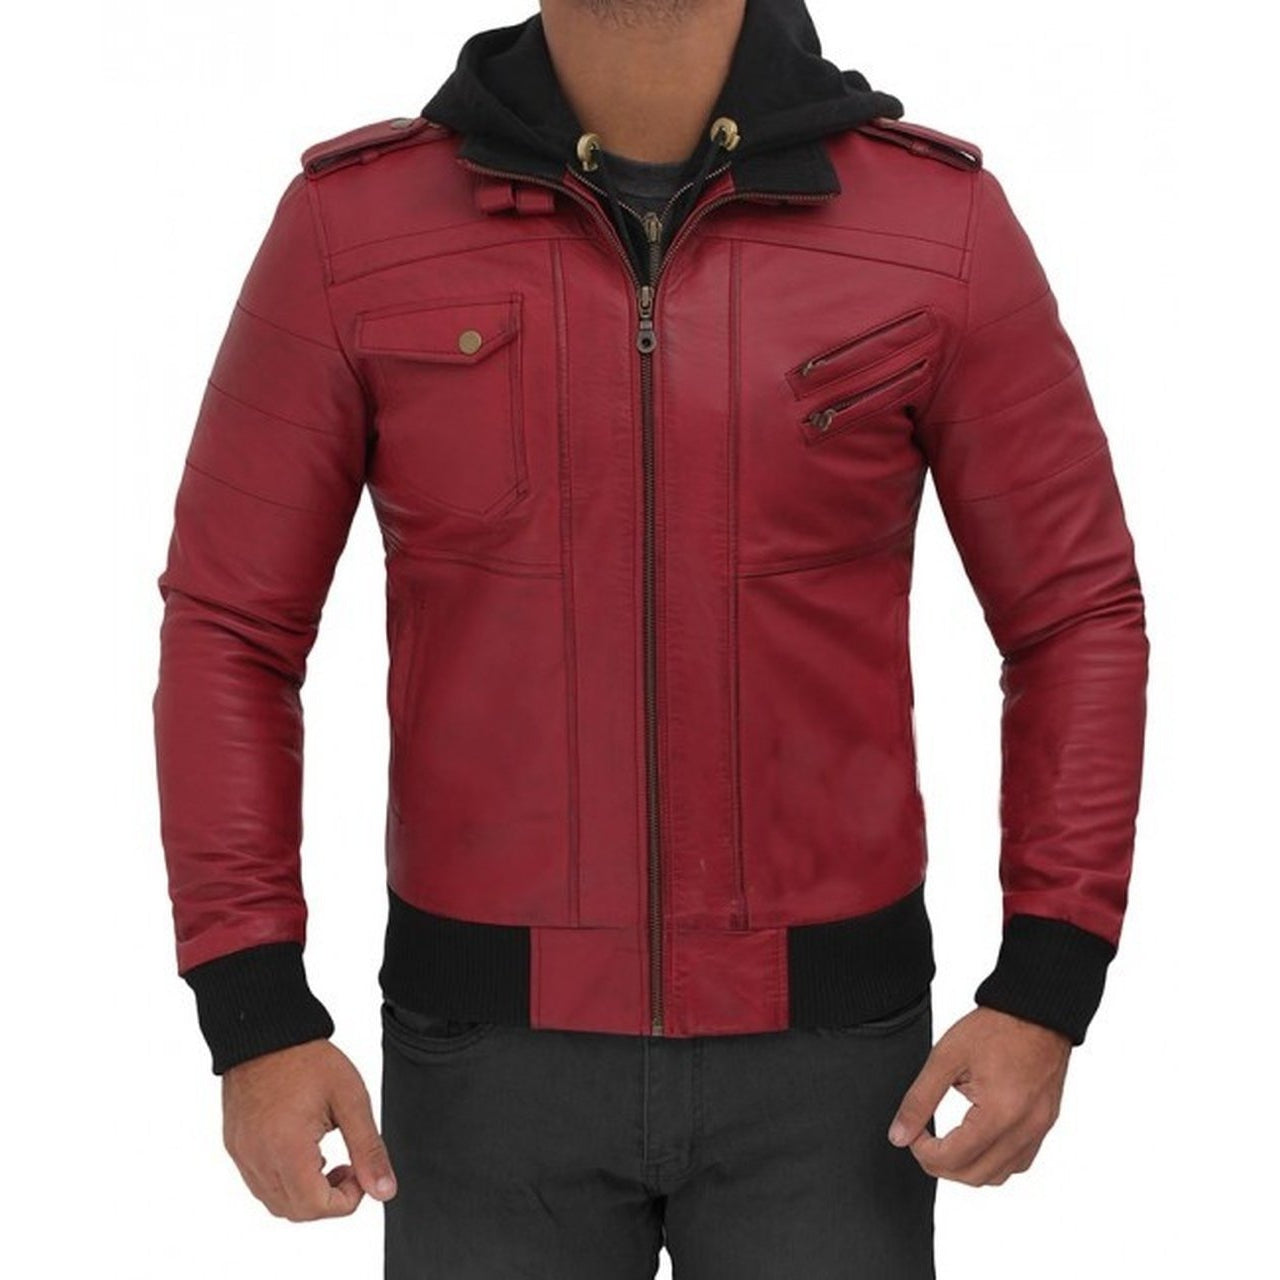 Maroon Hooded Bomber Jacket - Leather Jacket